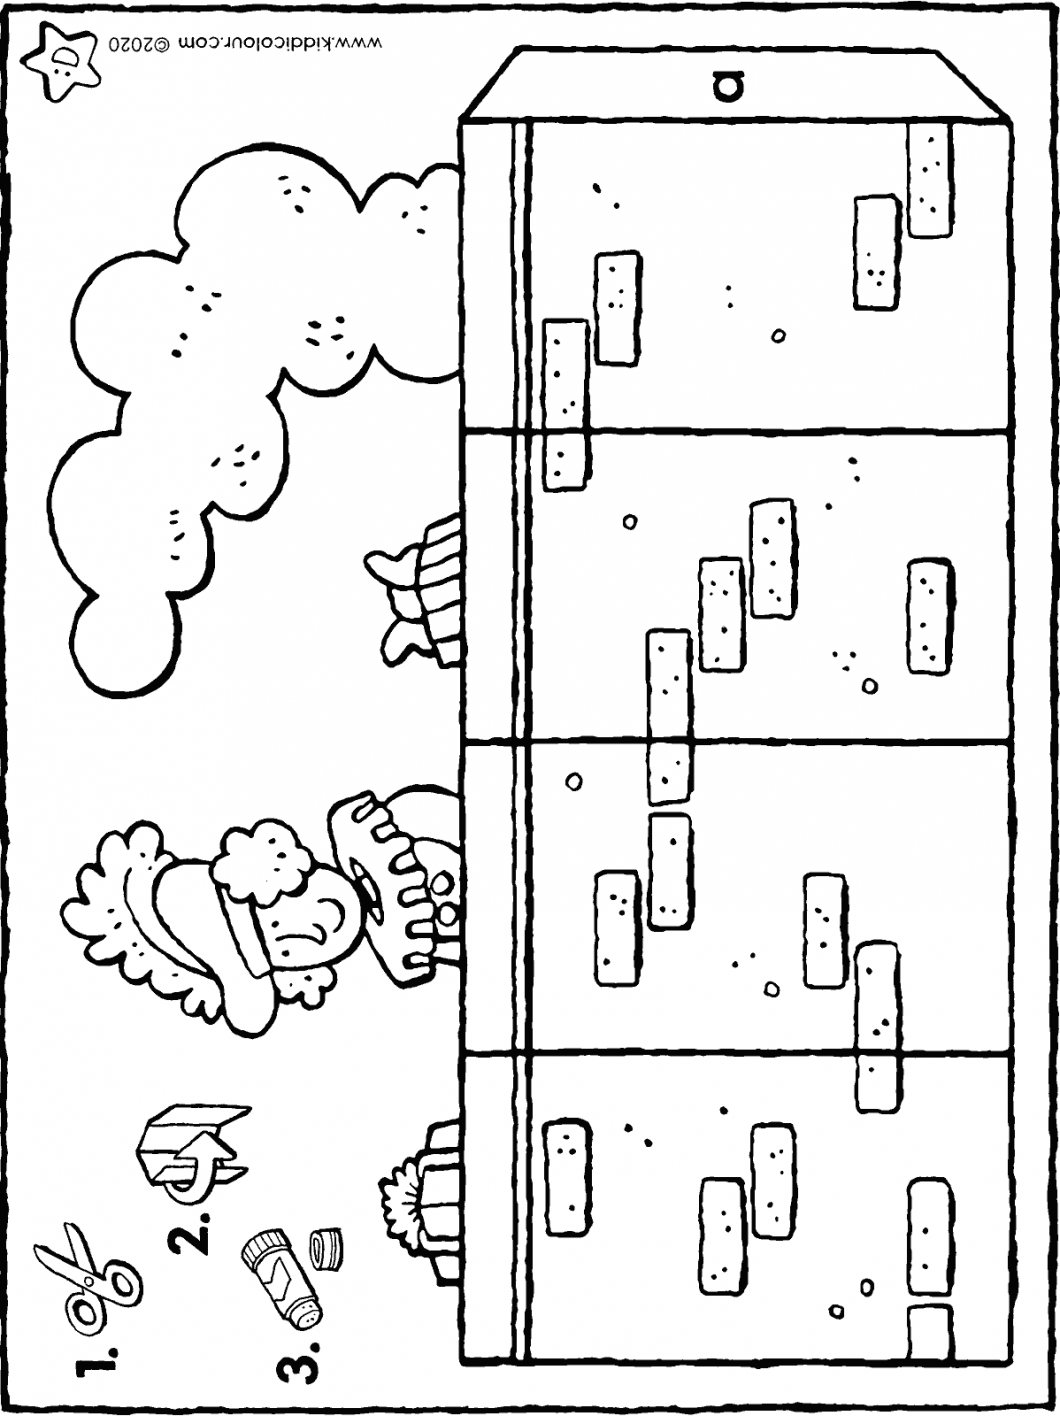 make your own Pete in the chimney colouring page drawing colouring picture 01H